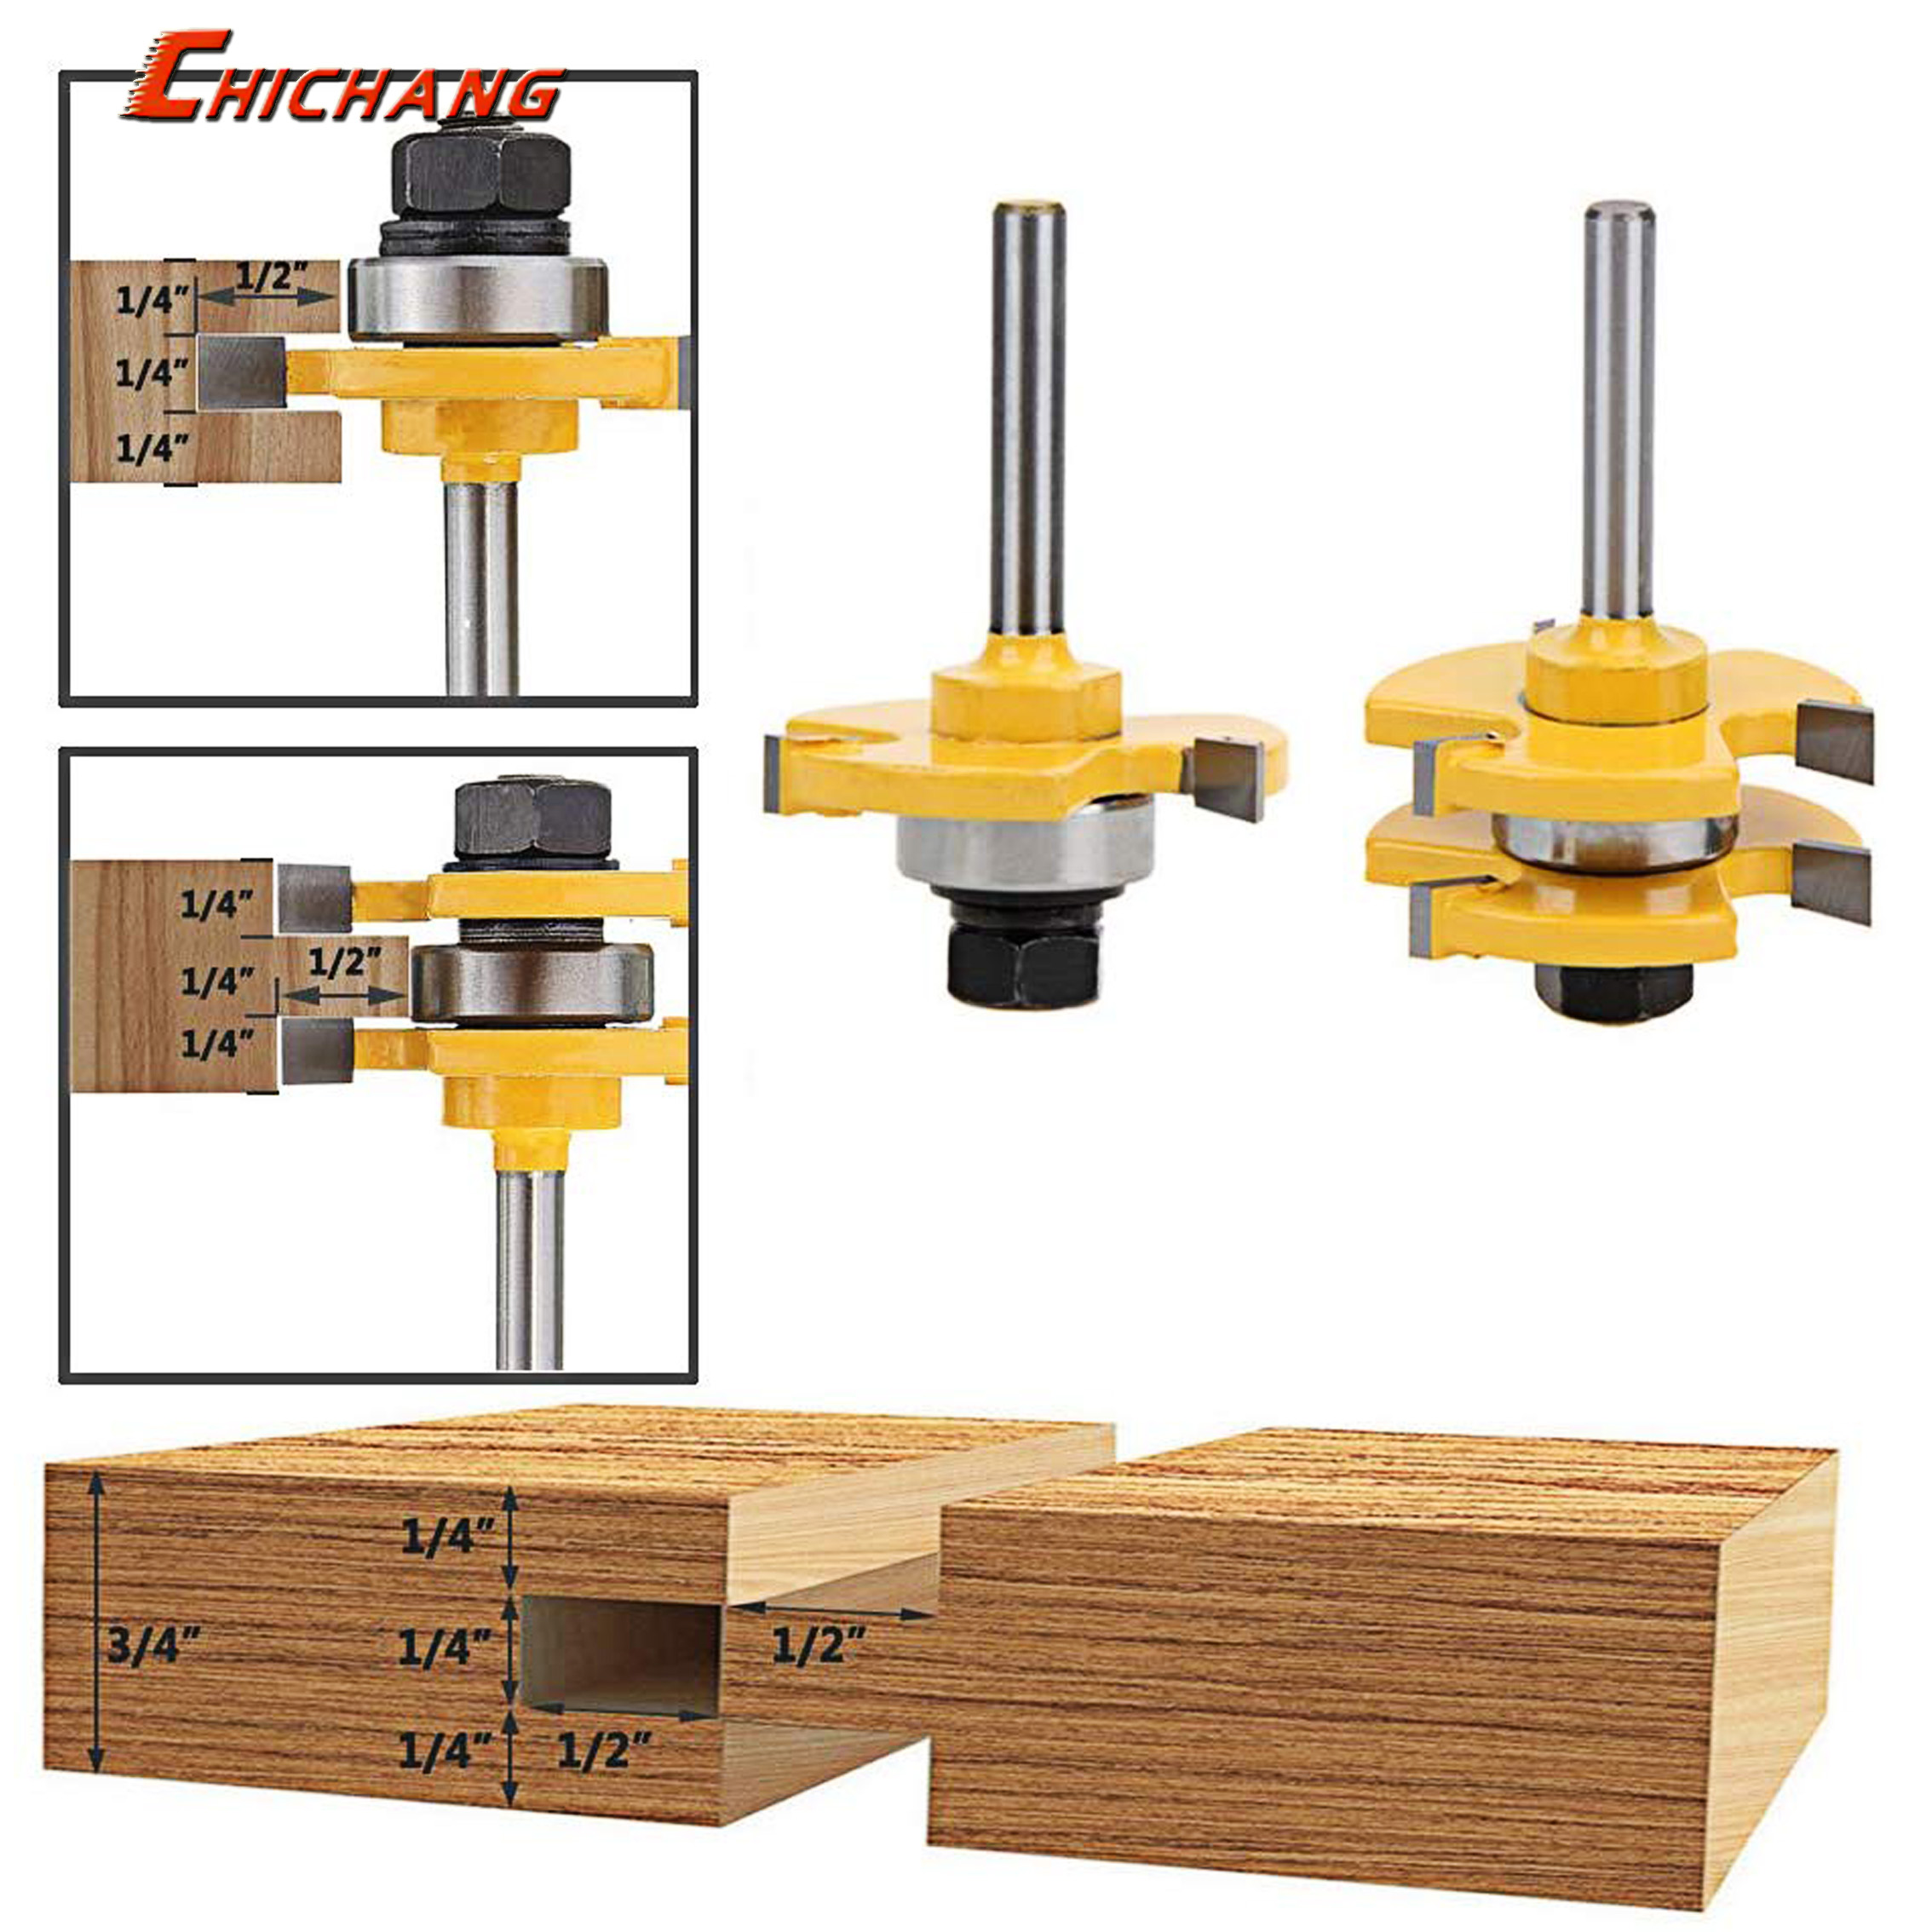 2 Pc 6mm Shank High Quality Tongue & Groove Joint Assembly Router Bit Set 3/4